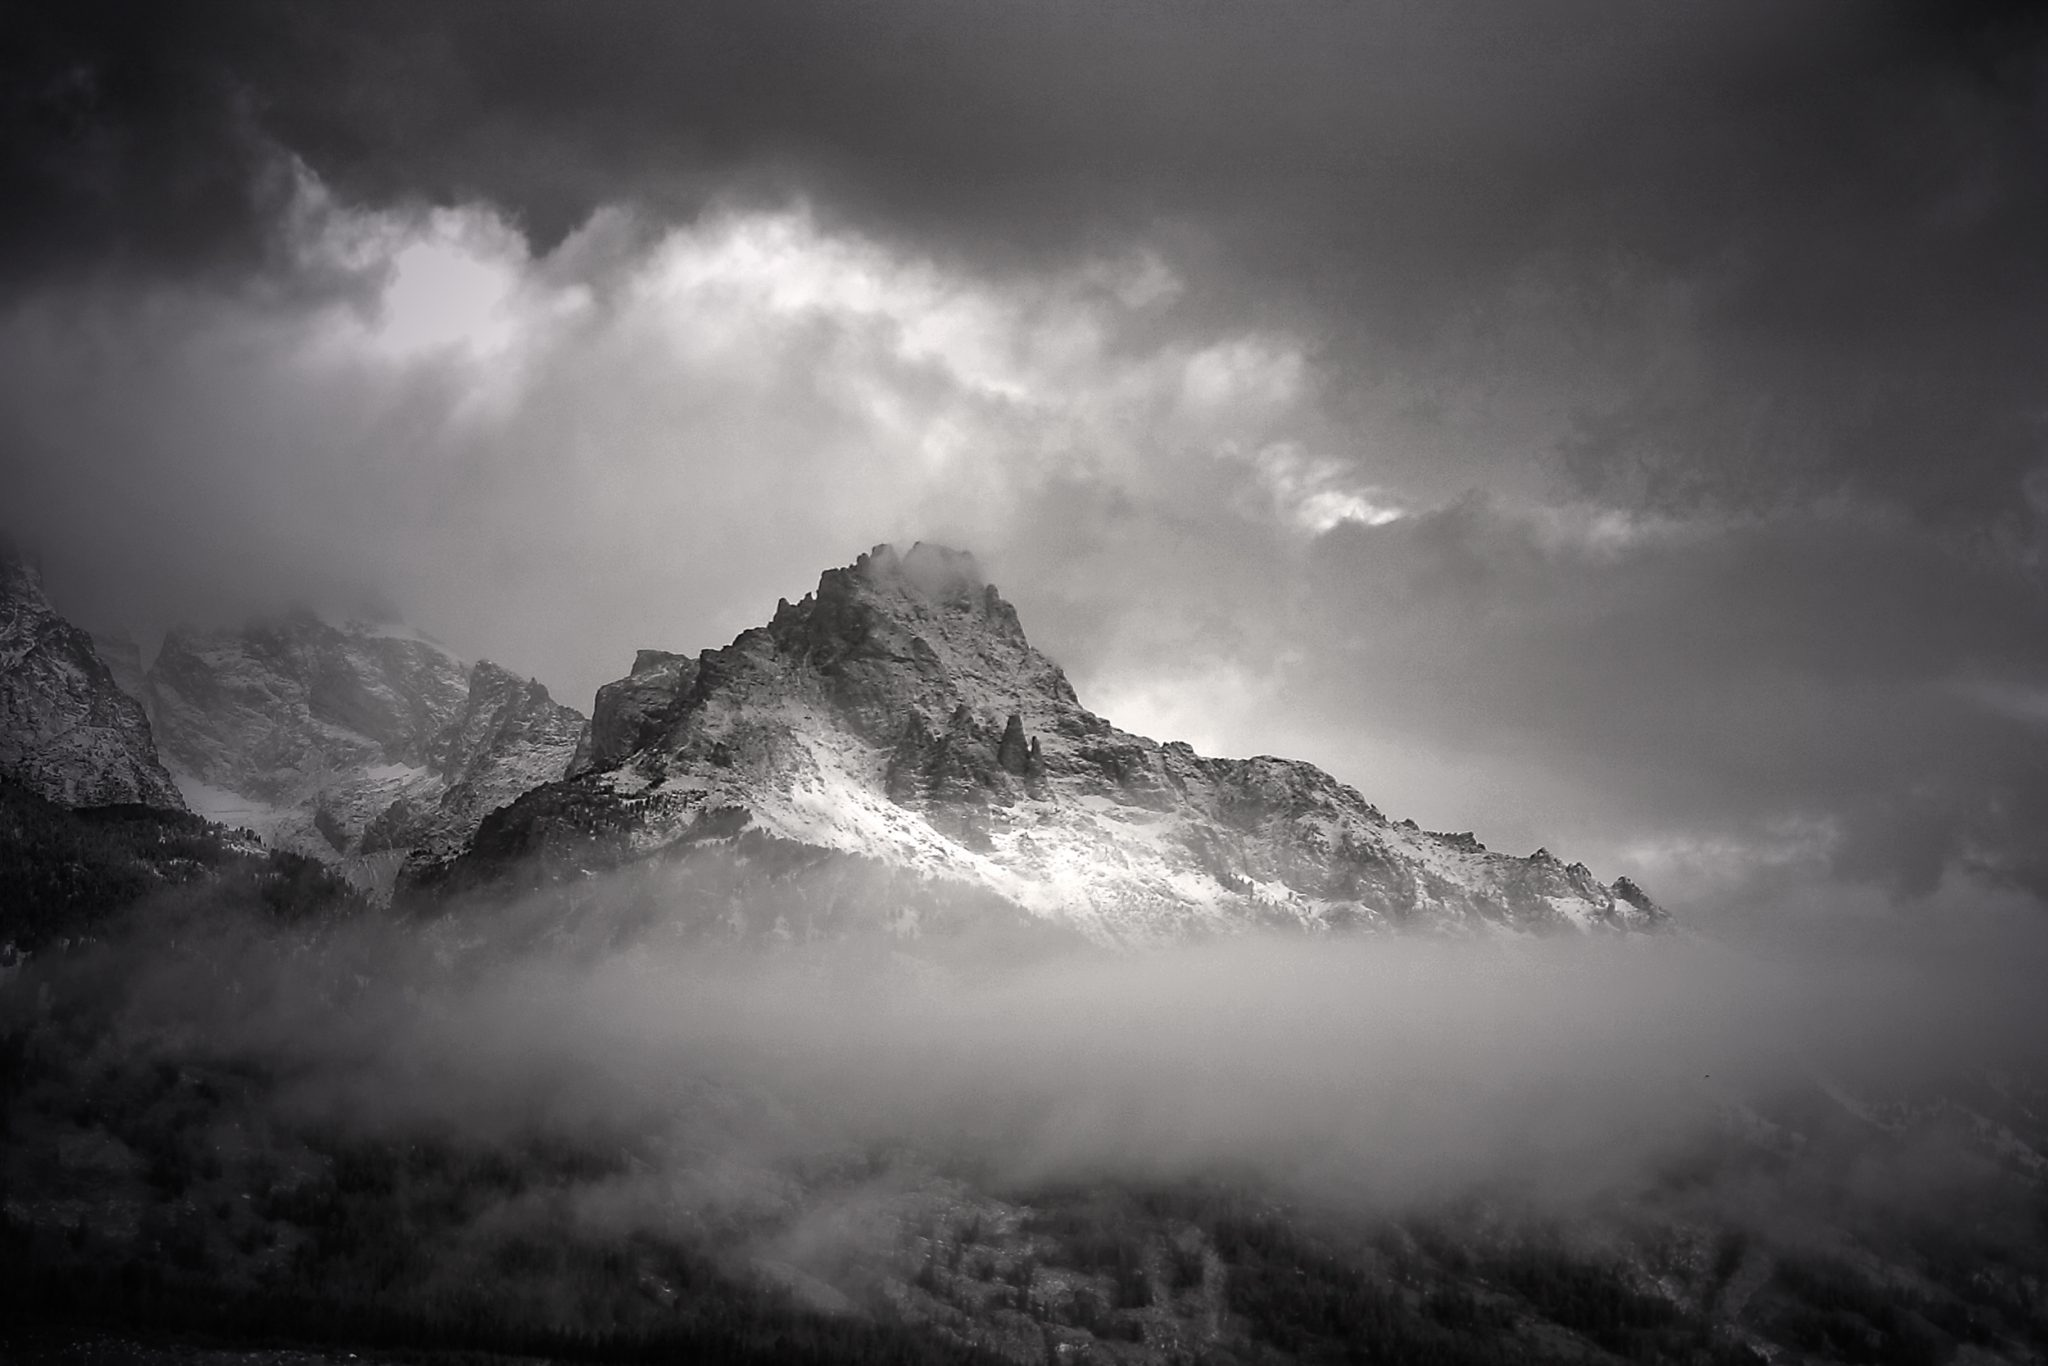 """The """"Sisters"""" (the little peaks in the middle of the mountain) endure a stormy morning in the Tetons"""